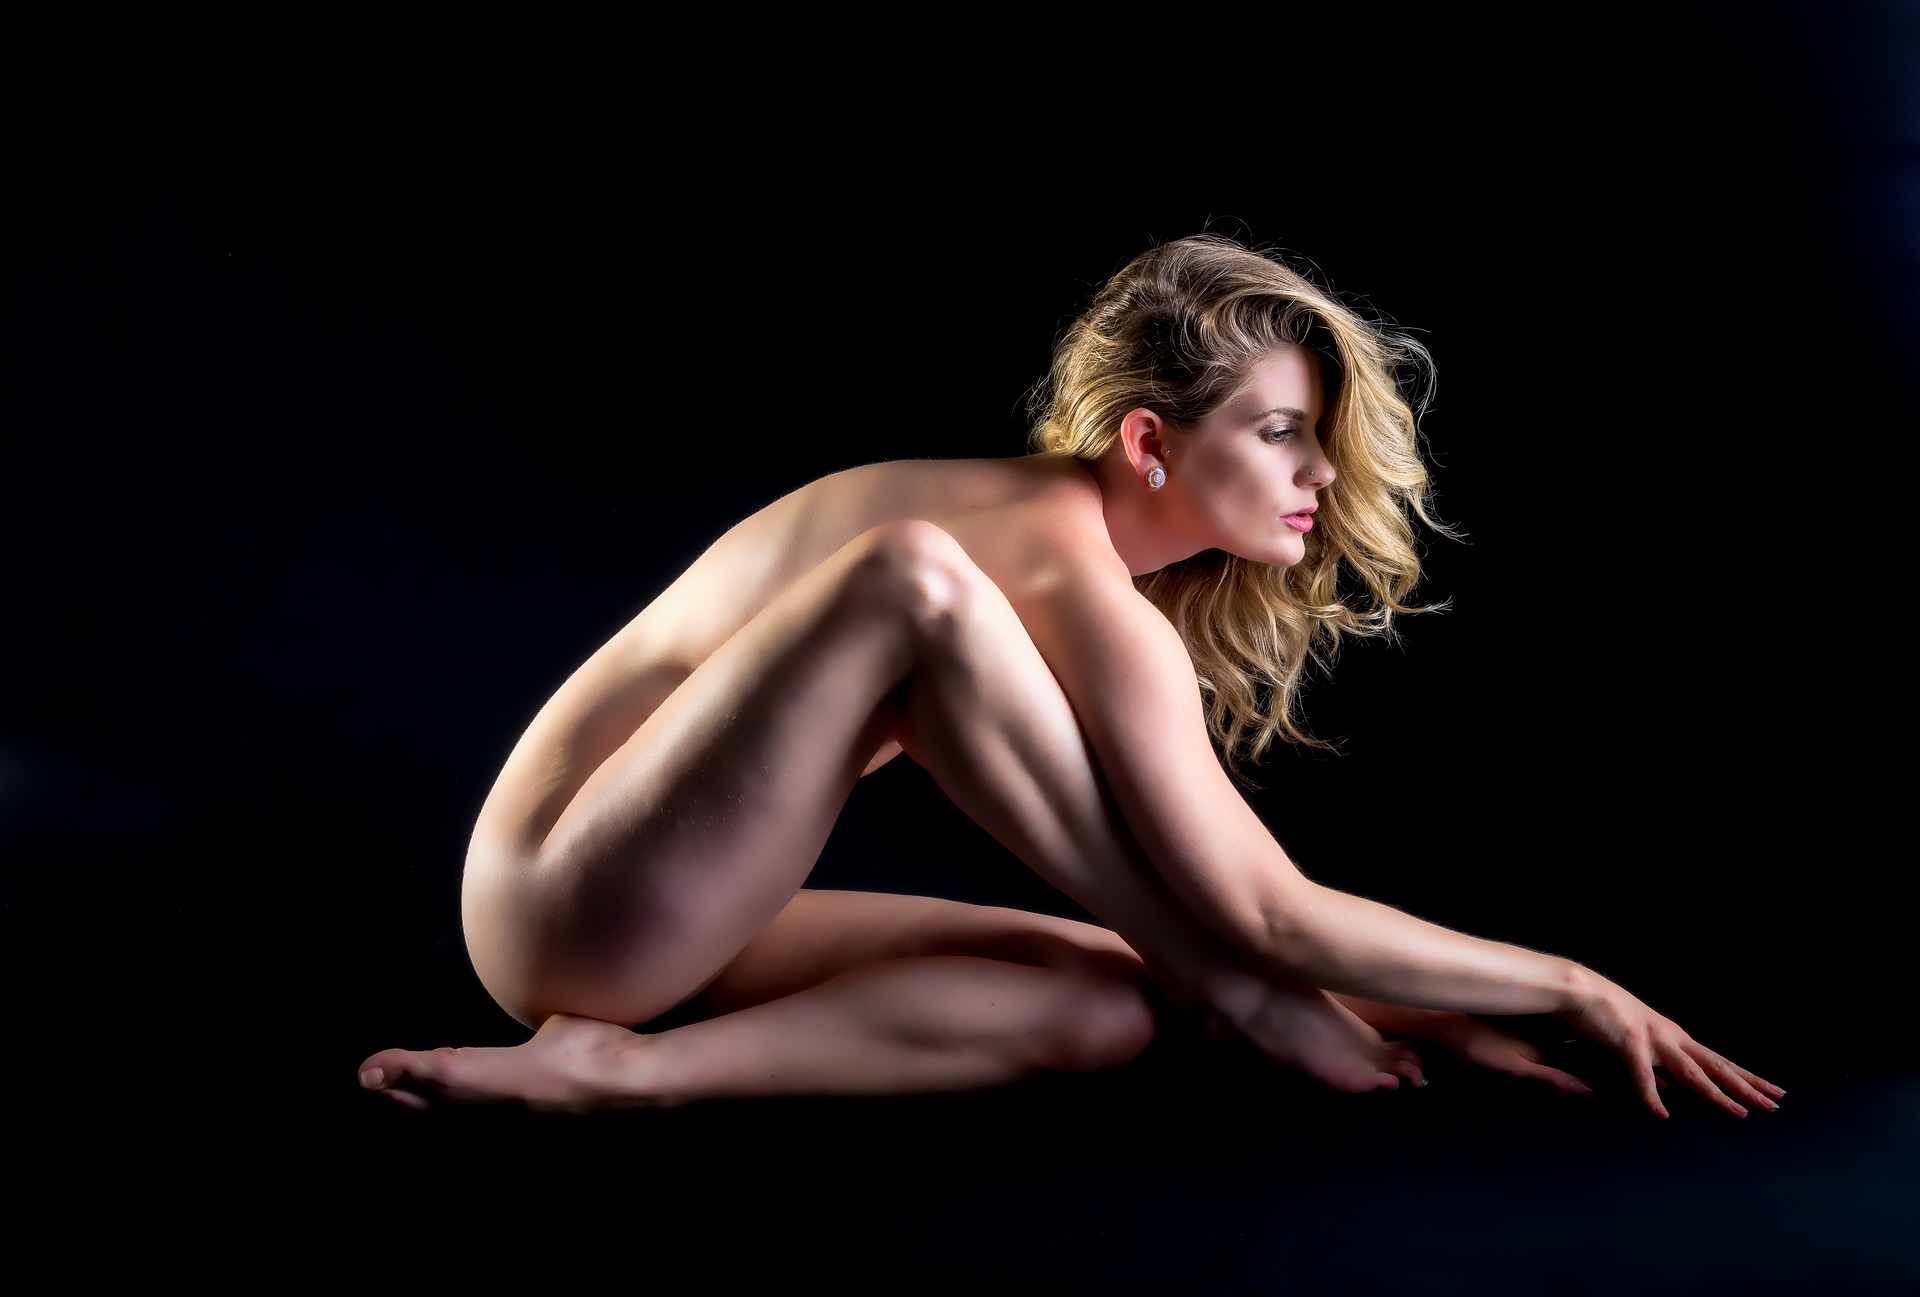 naked girl doing a pose